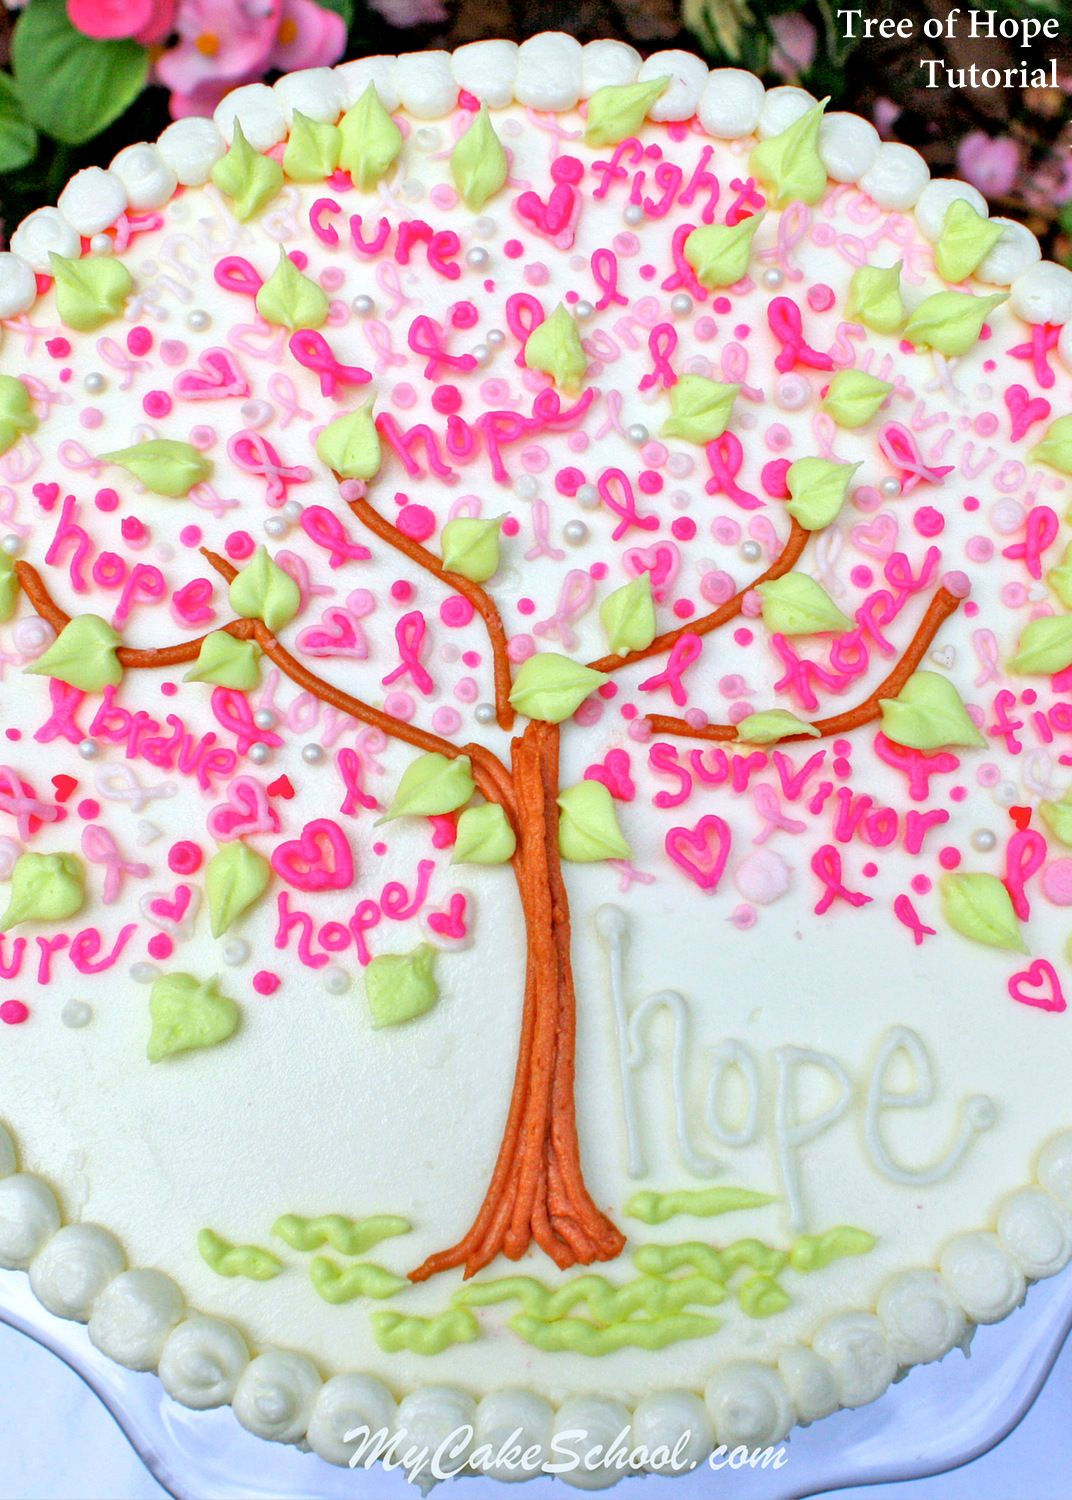 Simple Beautiful Tree Of Hope Cake For T Cancer Awareness Free Tutorial By